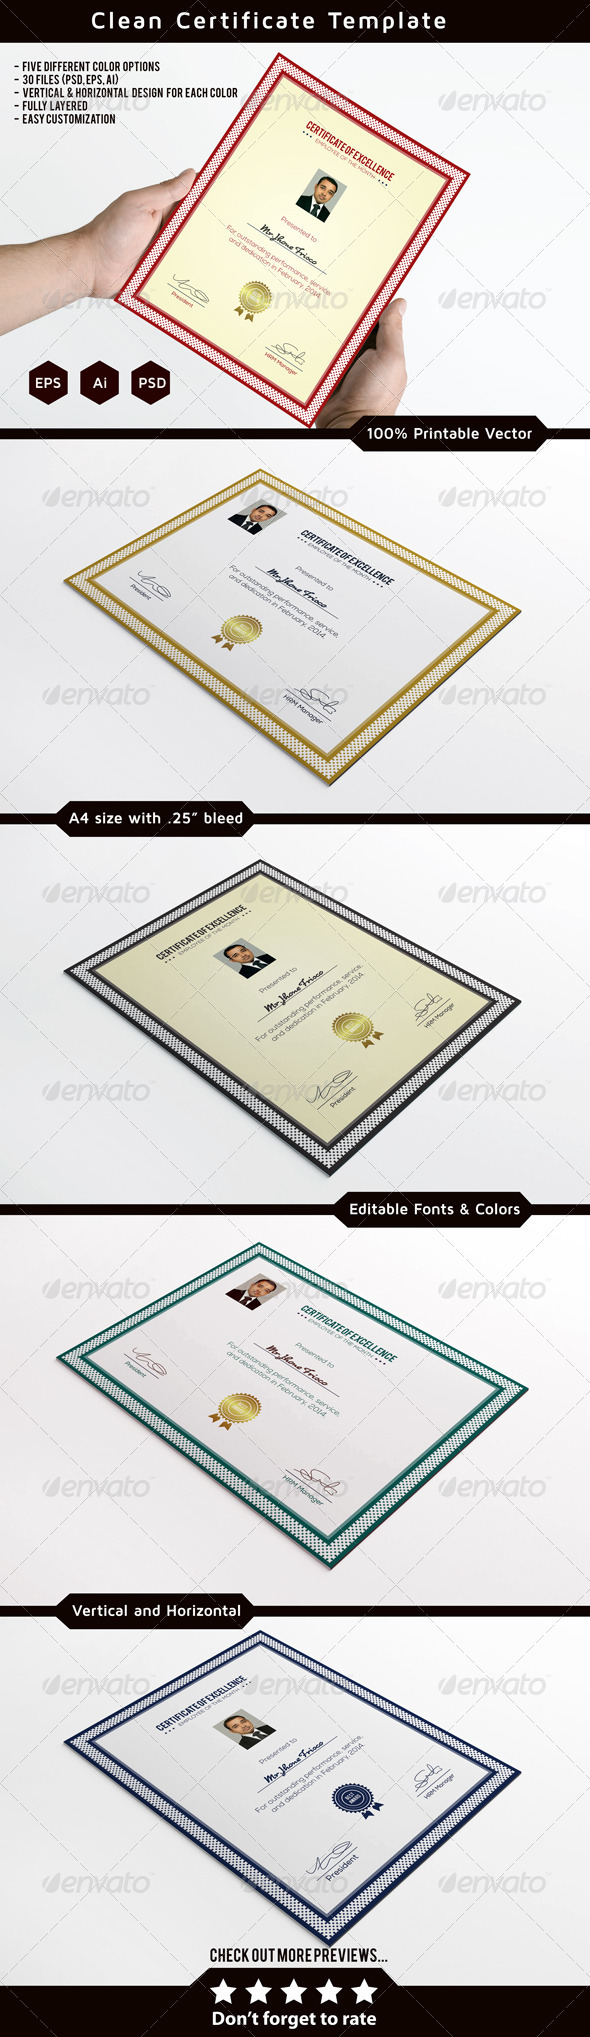 GraphicRiver Clean Certificate Template 7383332